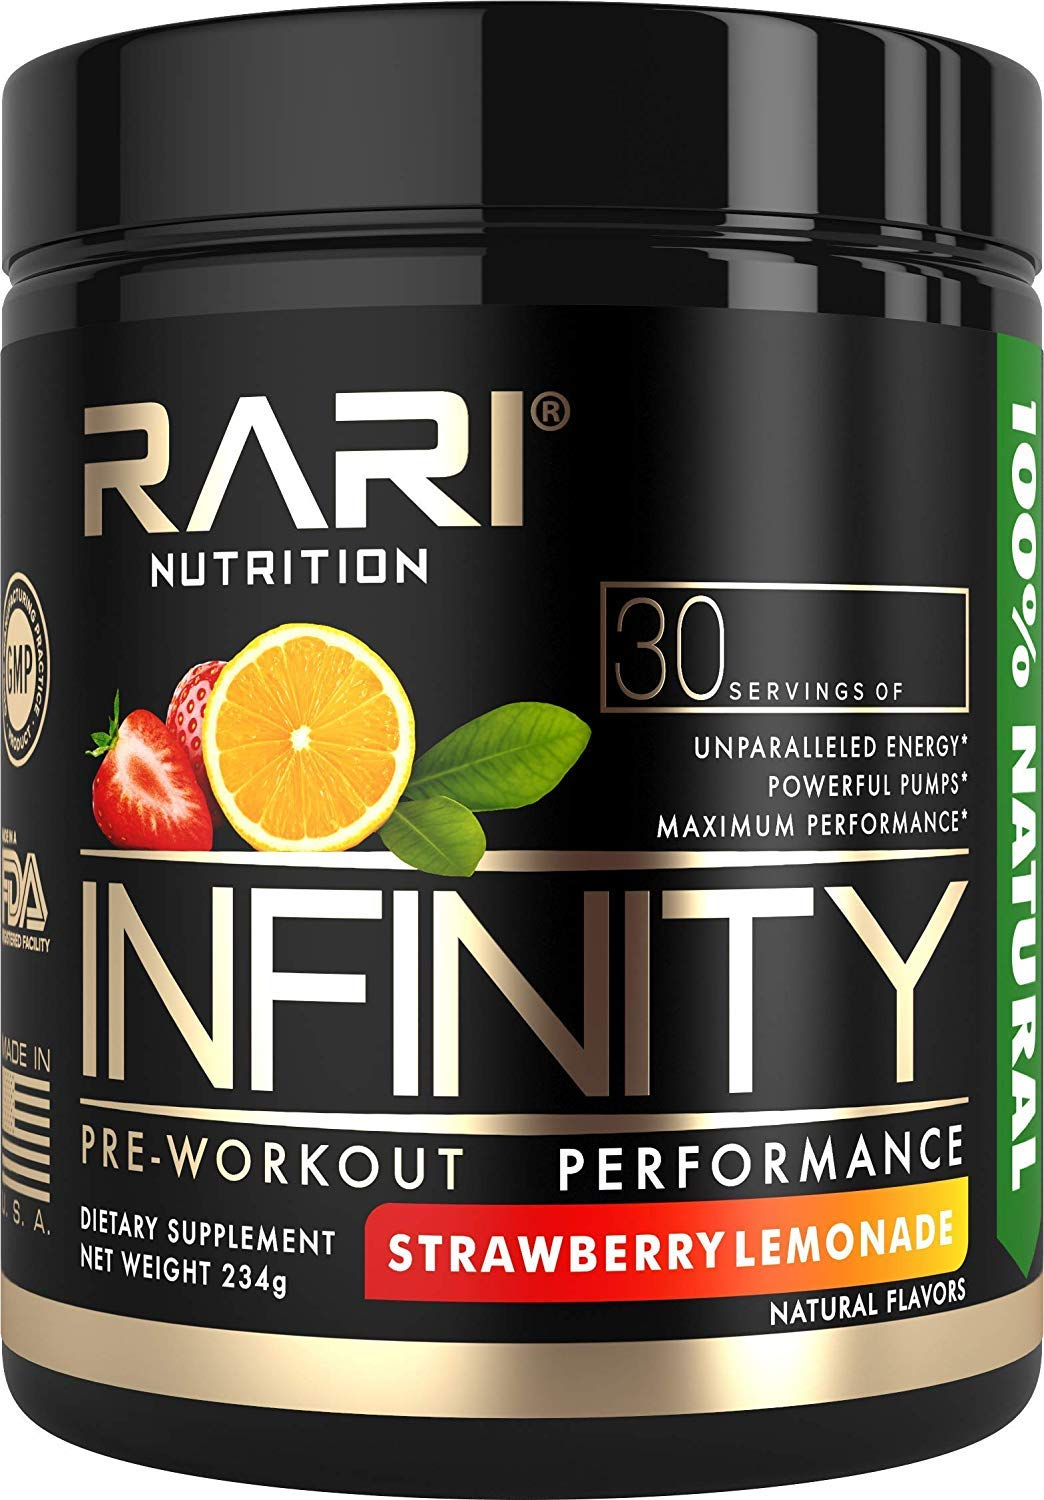 6. Rari Nutrition Infinity Pre Workout